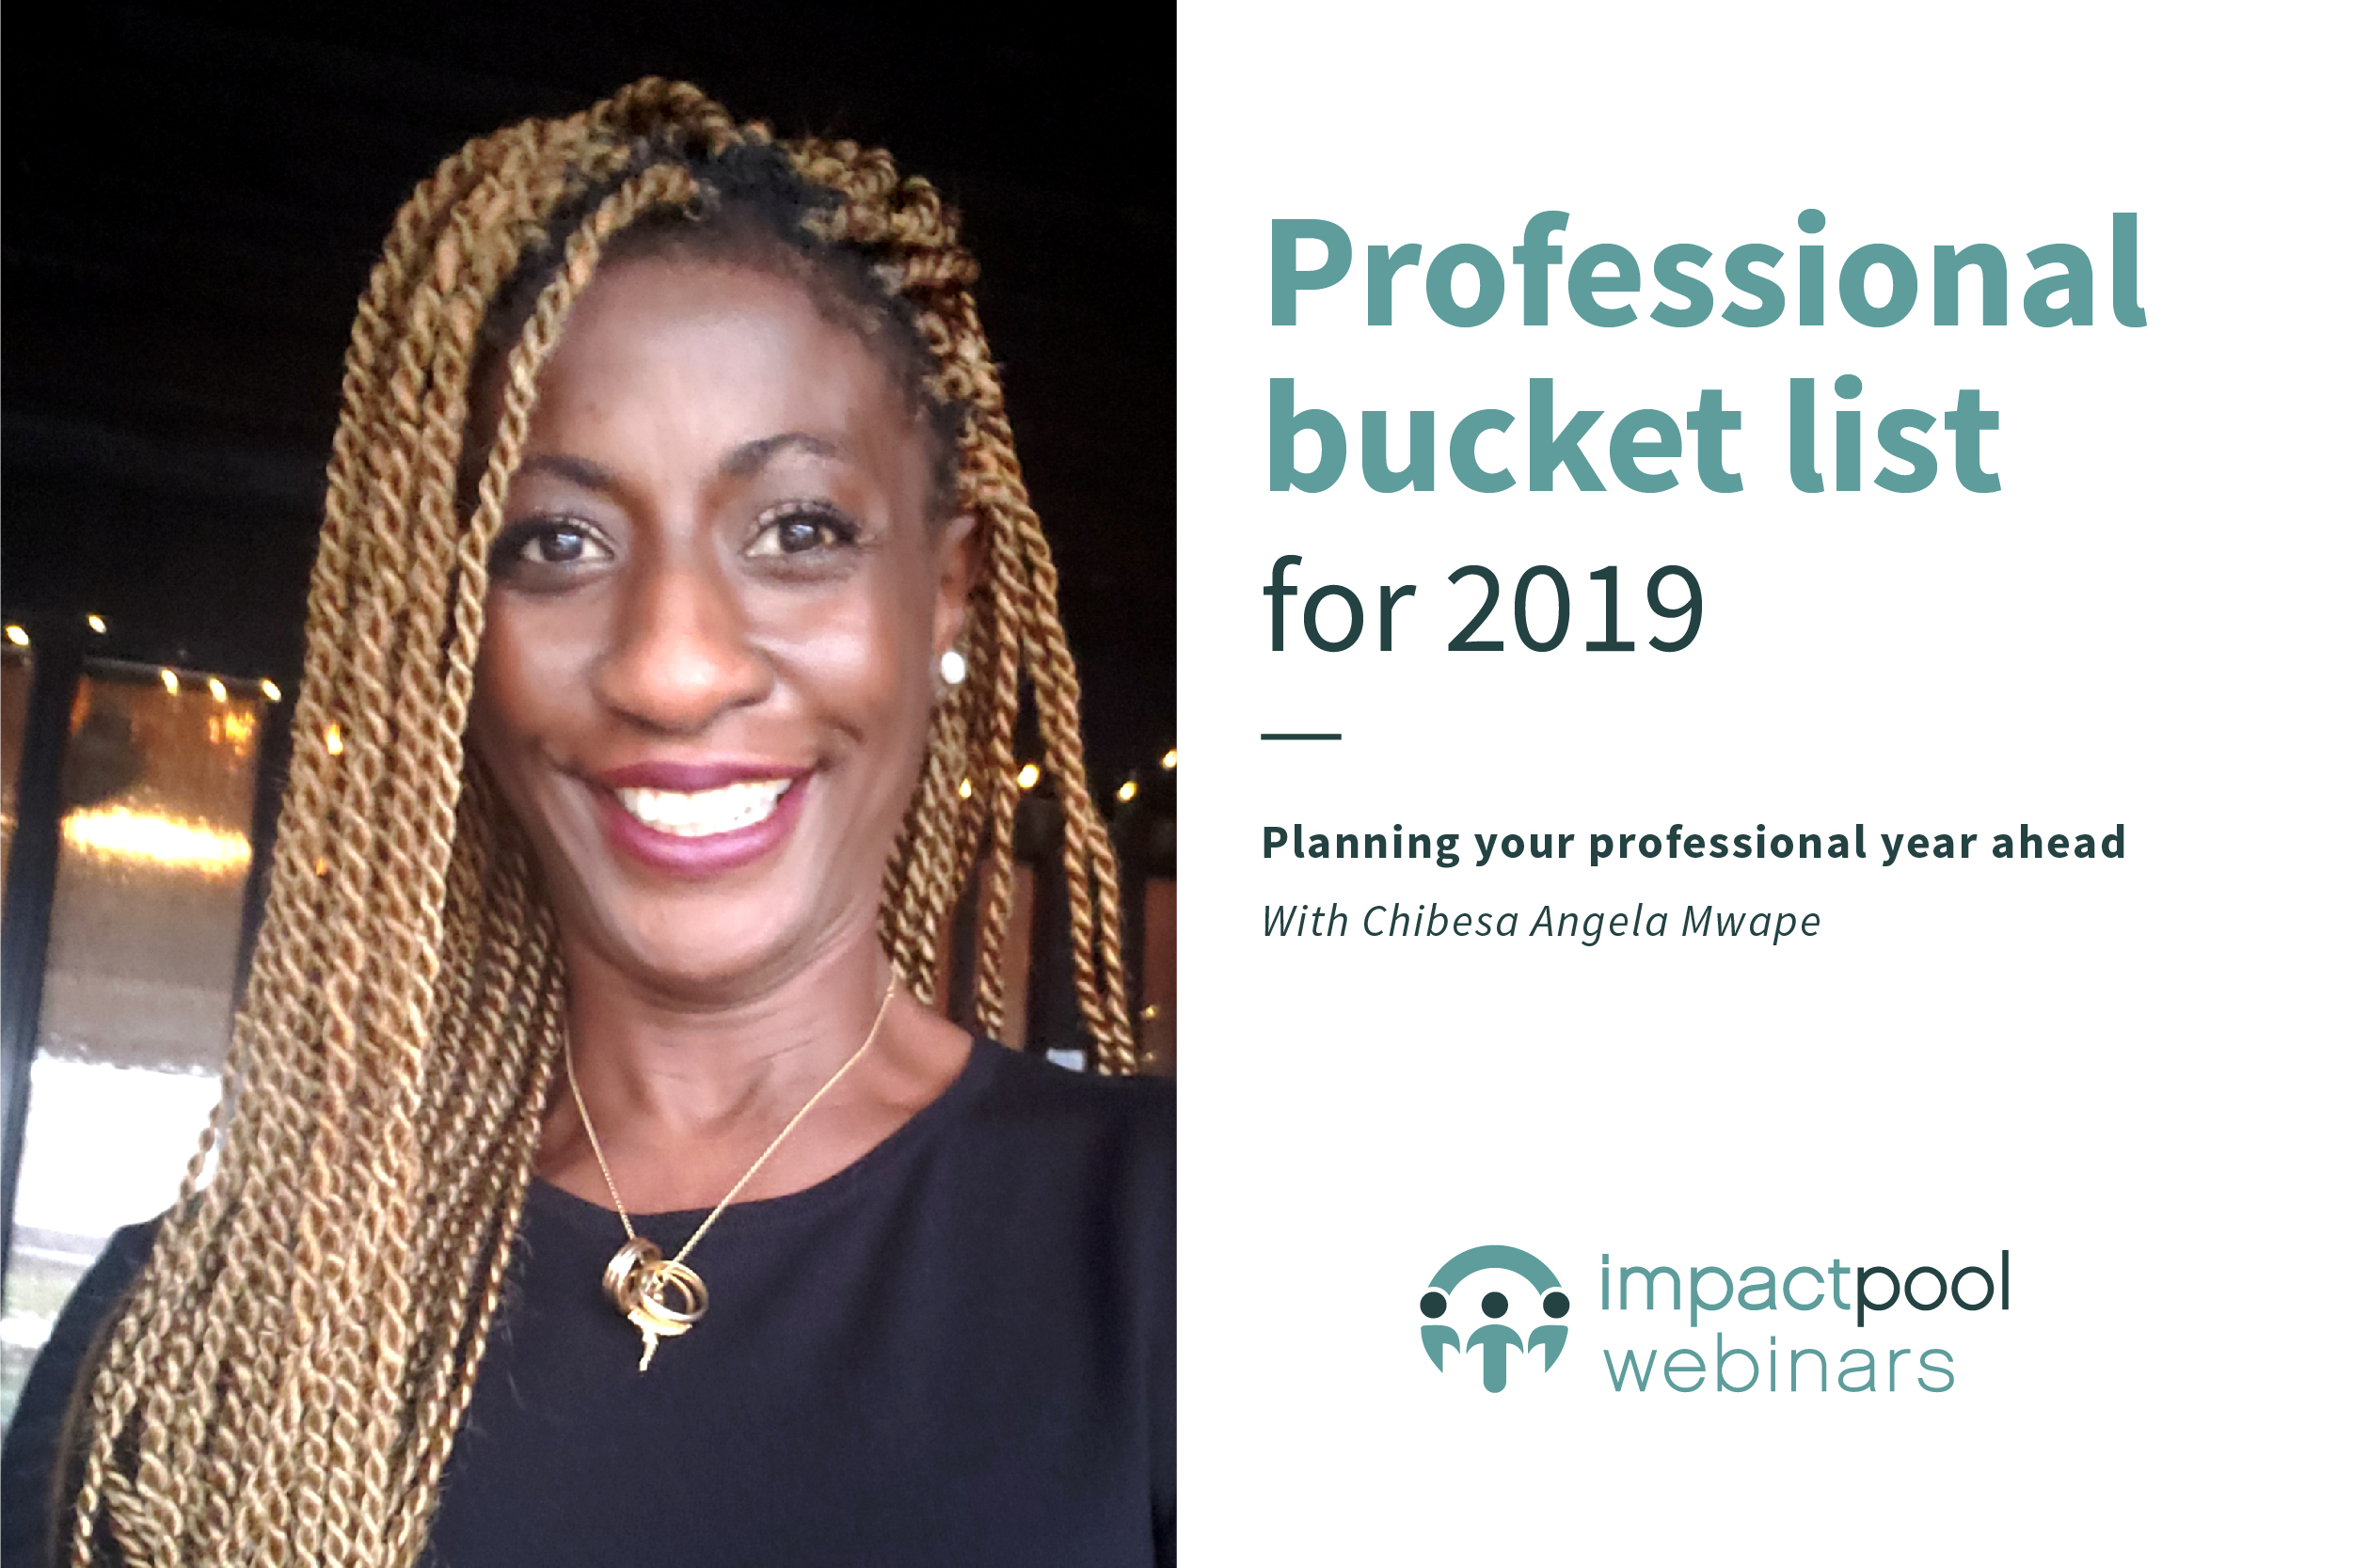 Webinar professional bucket list for 2019 c980b456 f81f 4bba 8942 411973ab28b0